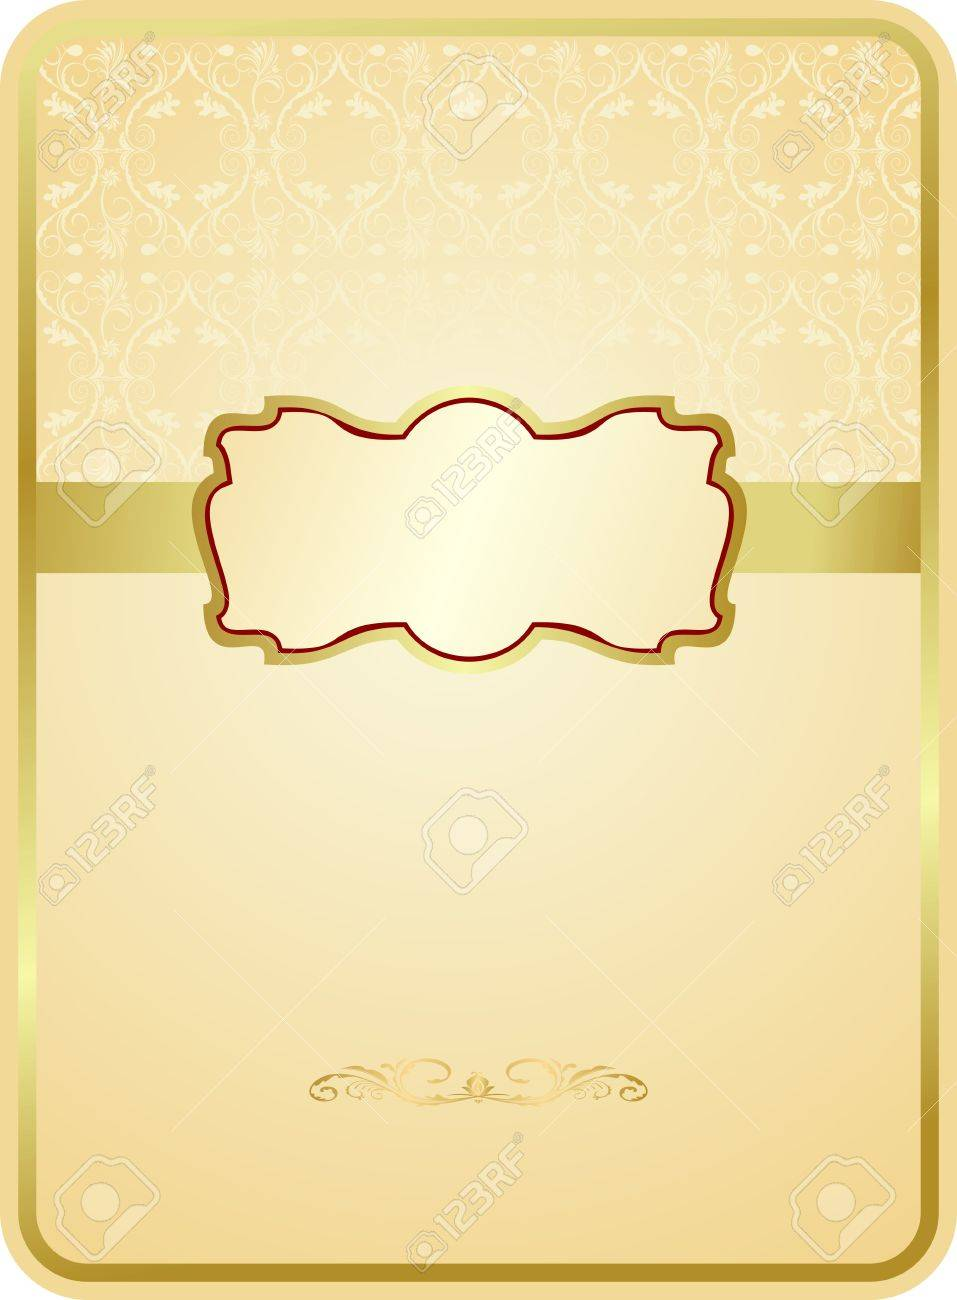 Wedding Card With Gold Emblem Royalty Free Cliparts Vectors And